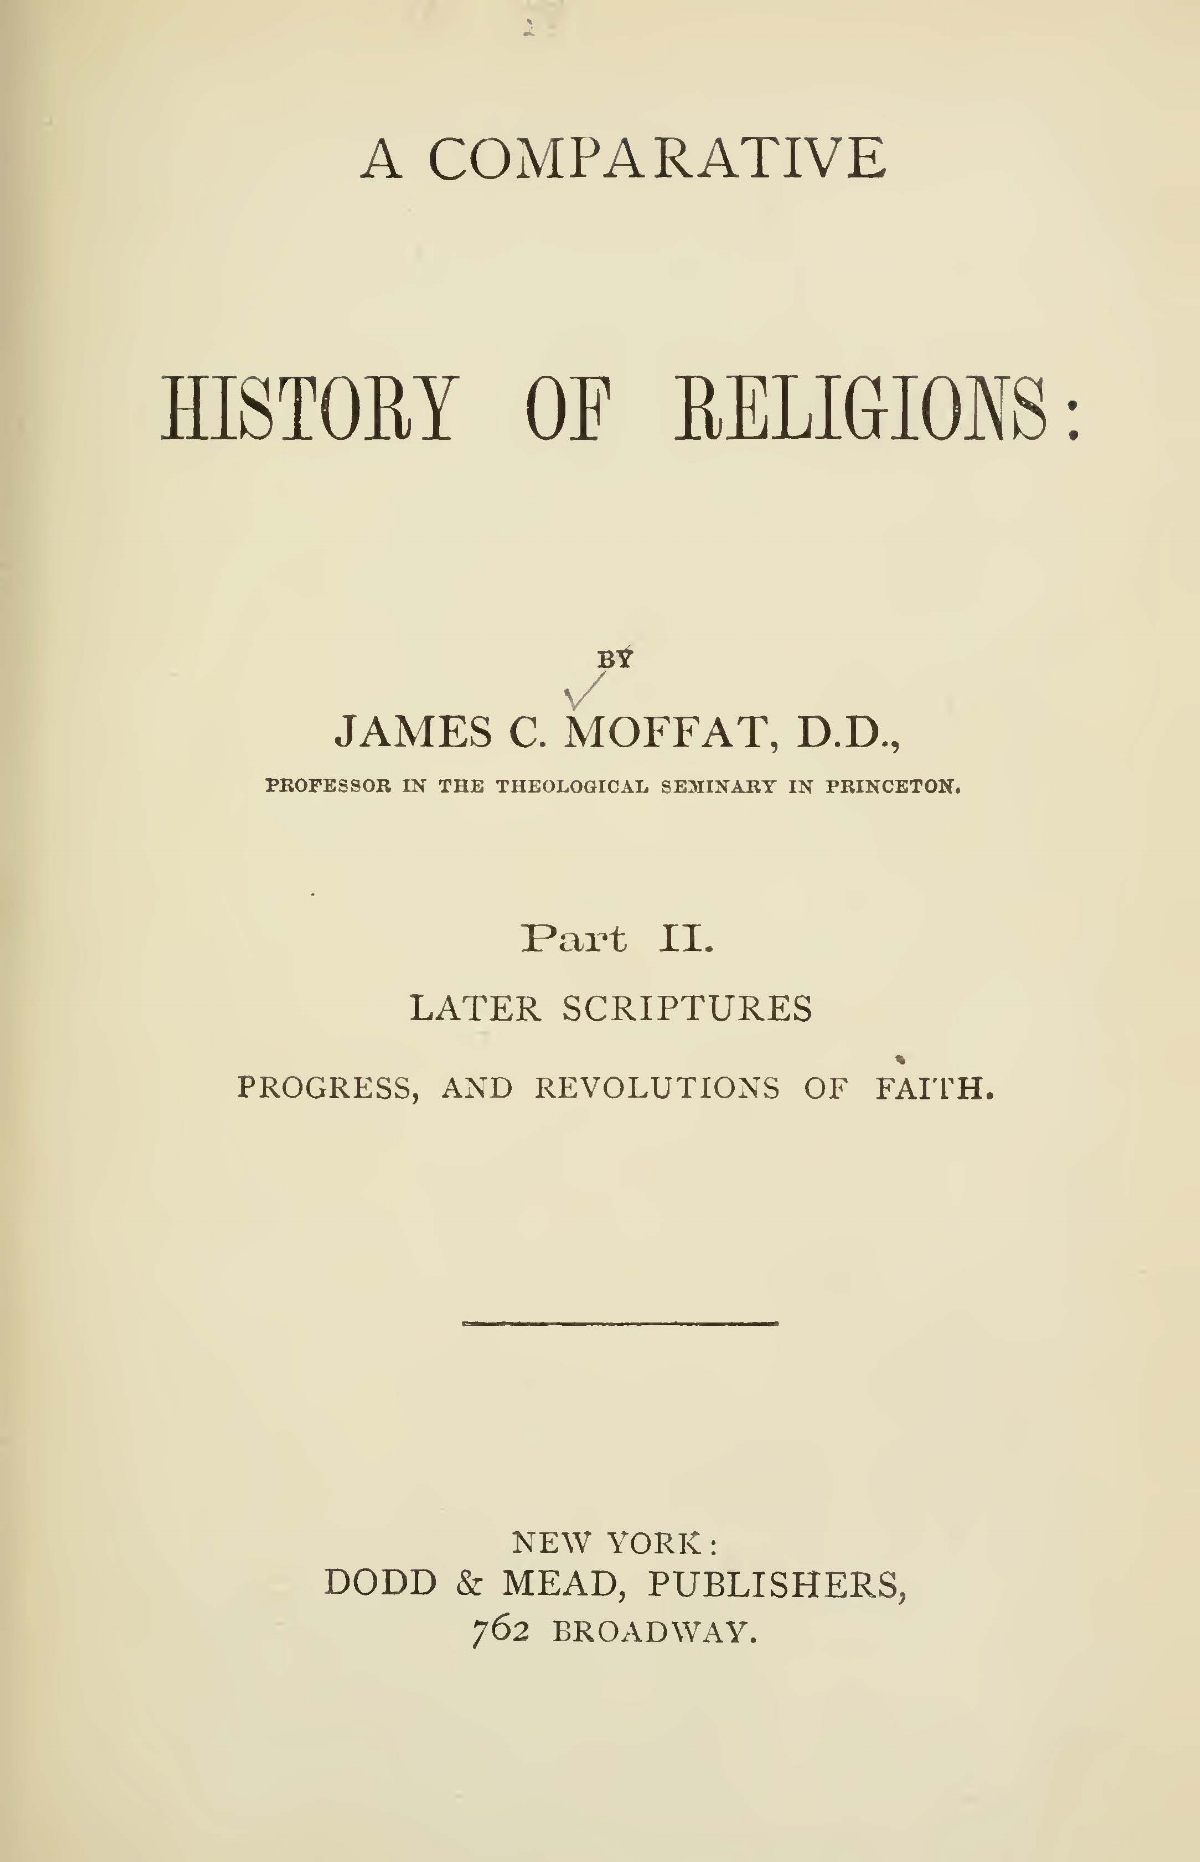 Moffat, James Clement, A Comparative History of Religions, Vol. 2 Title Page.jpg